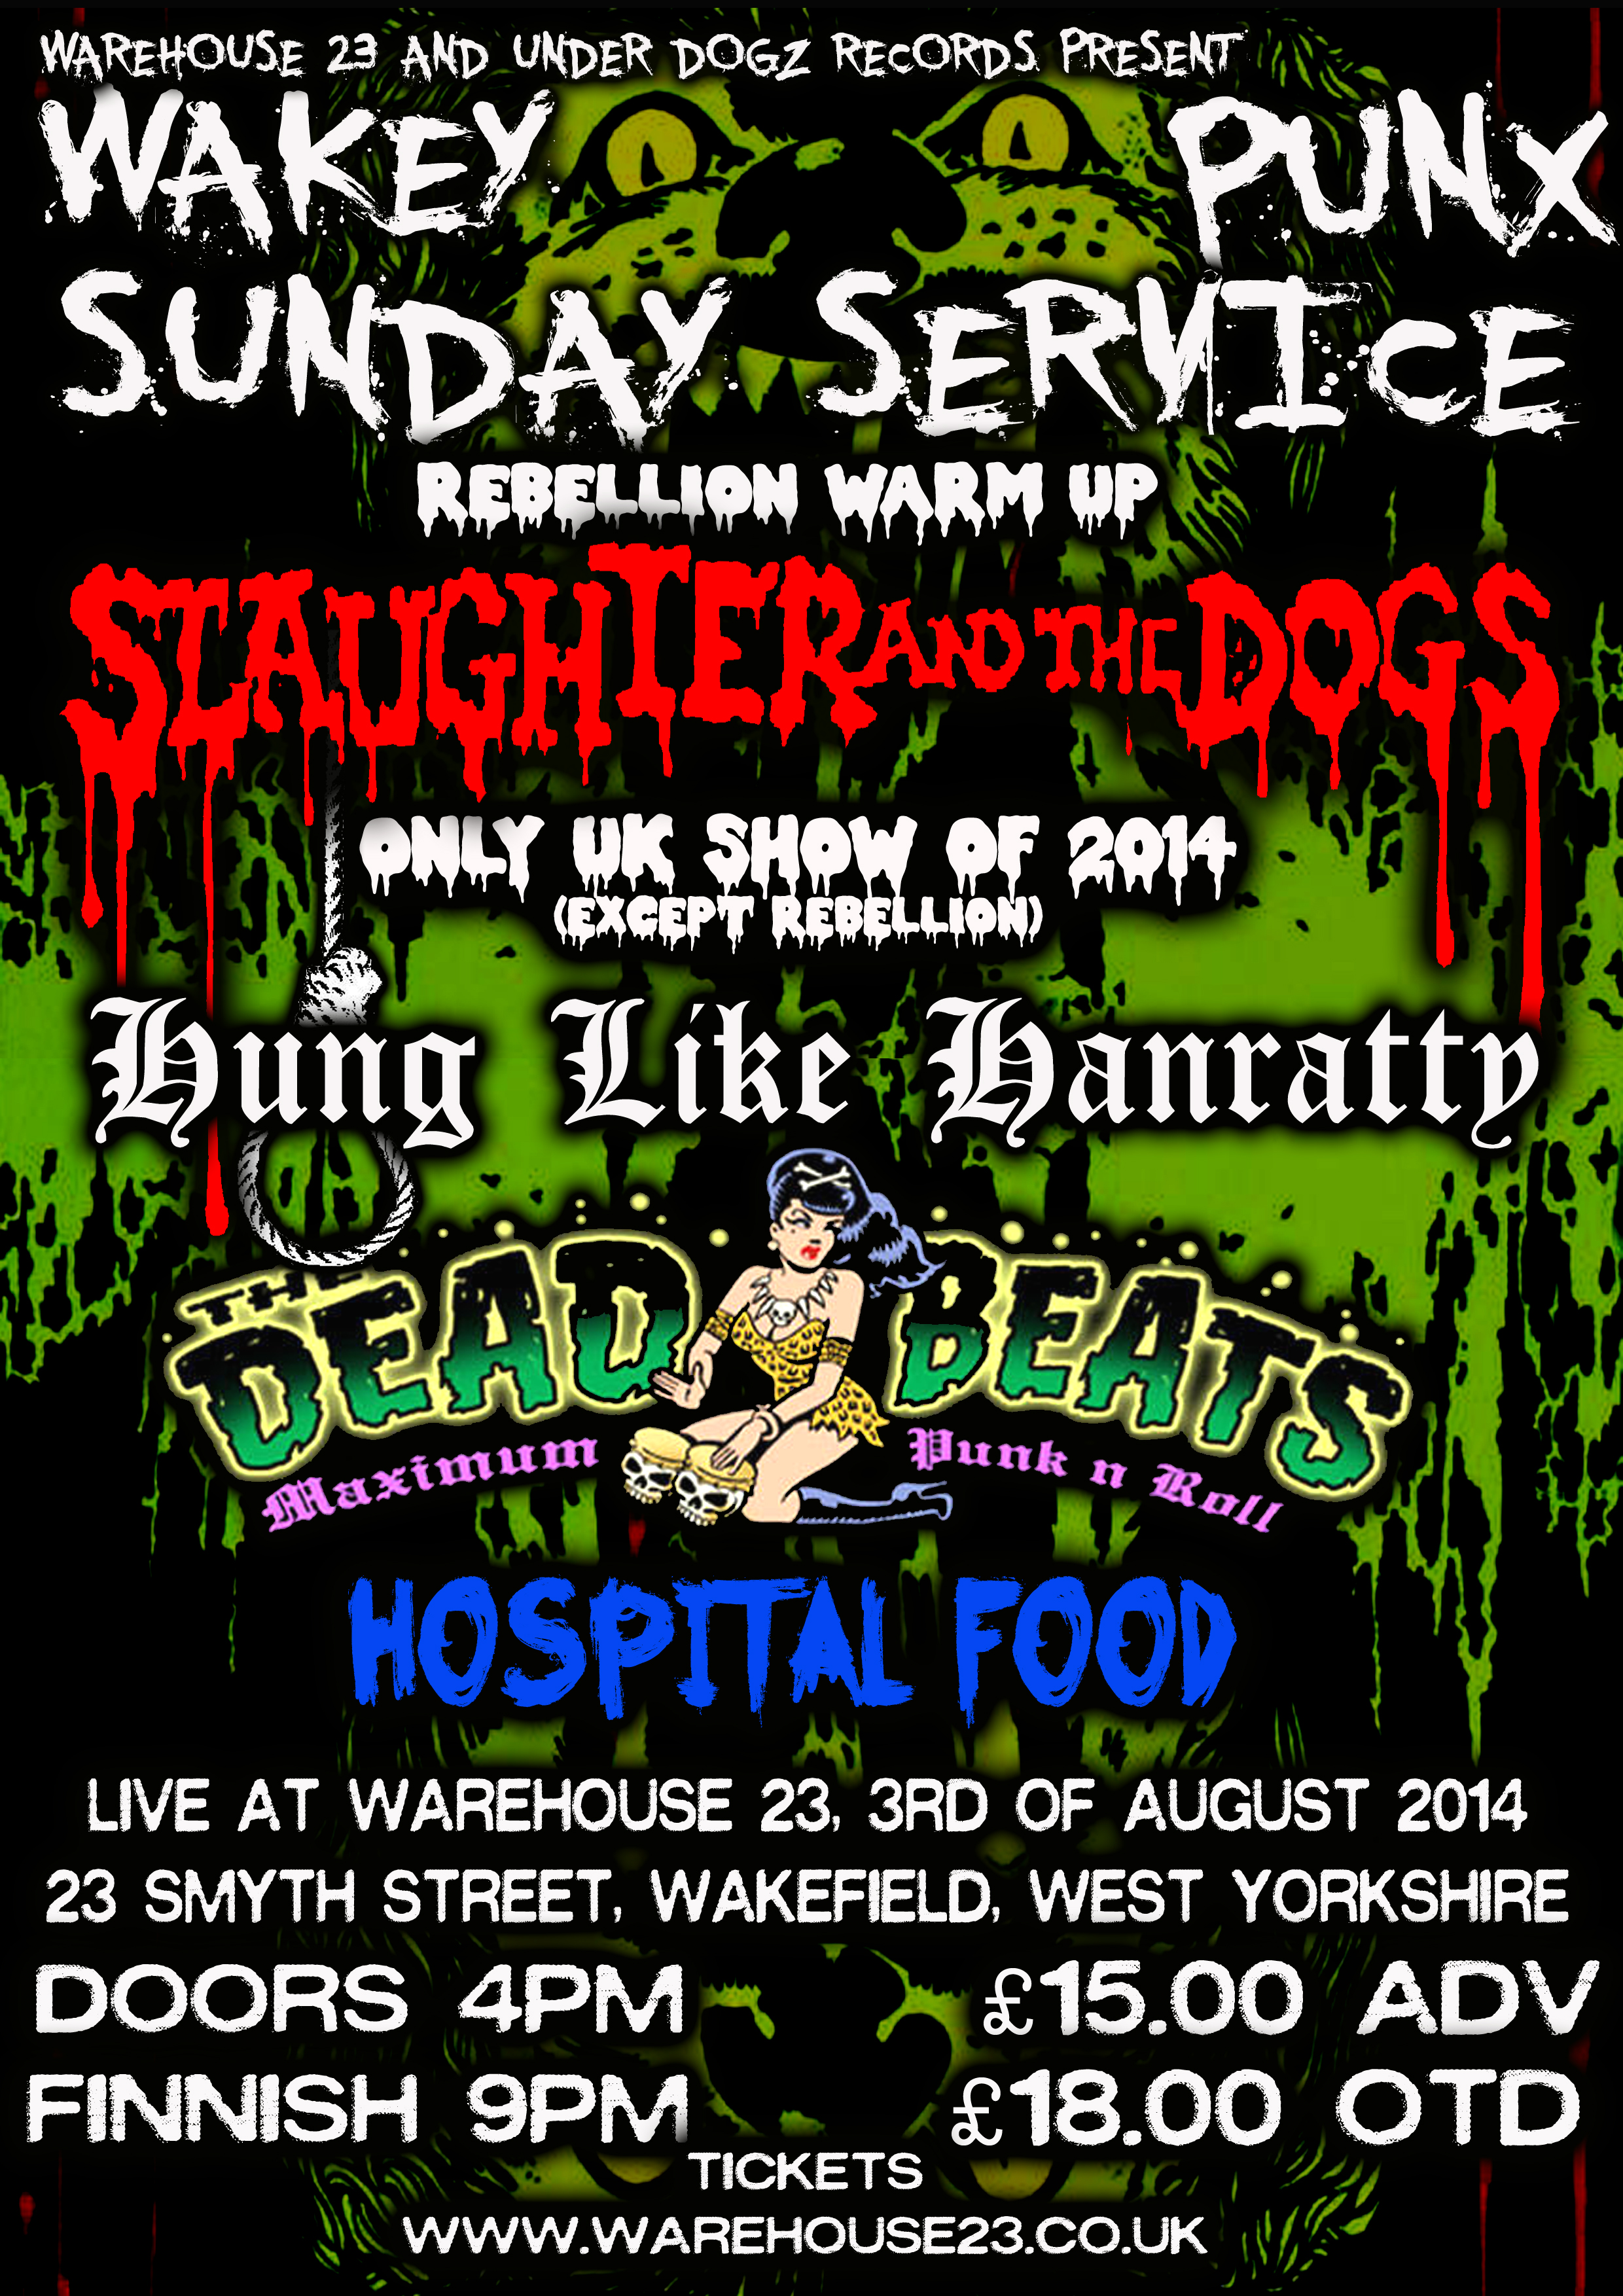 Slaughter The Dogs Runaway